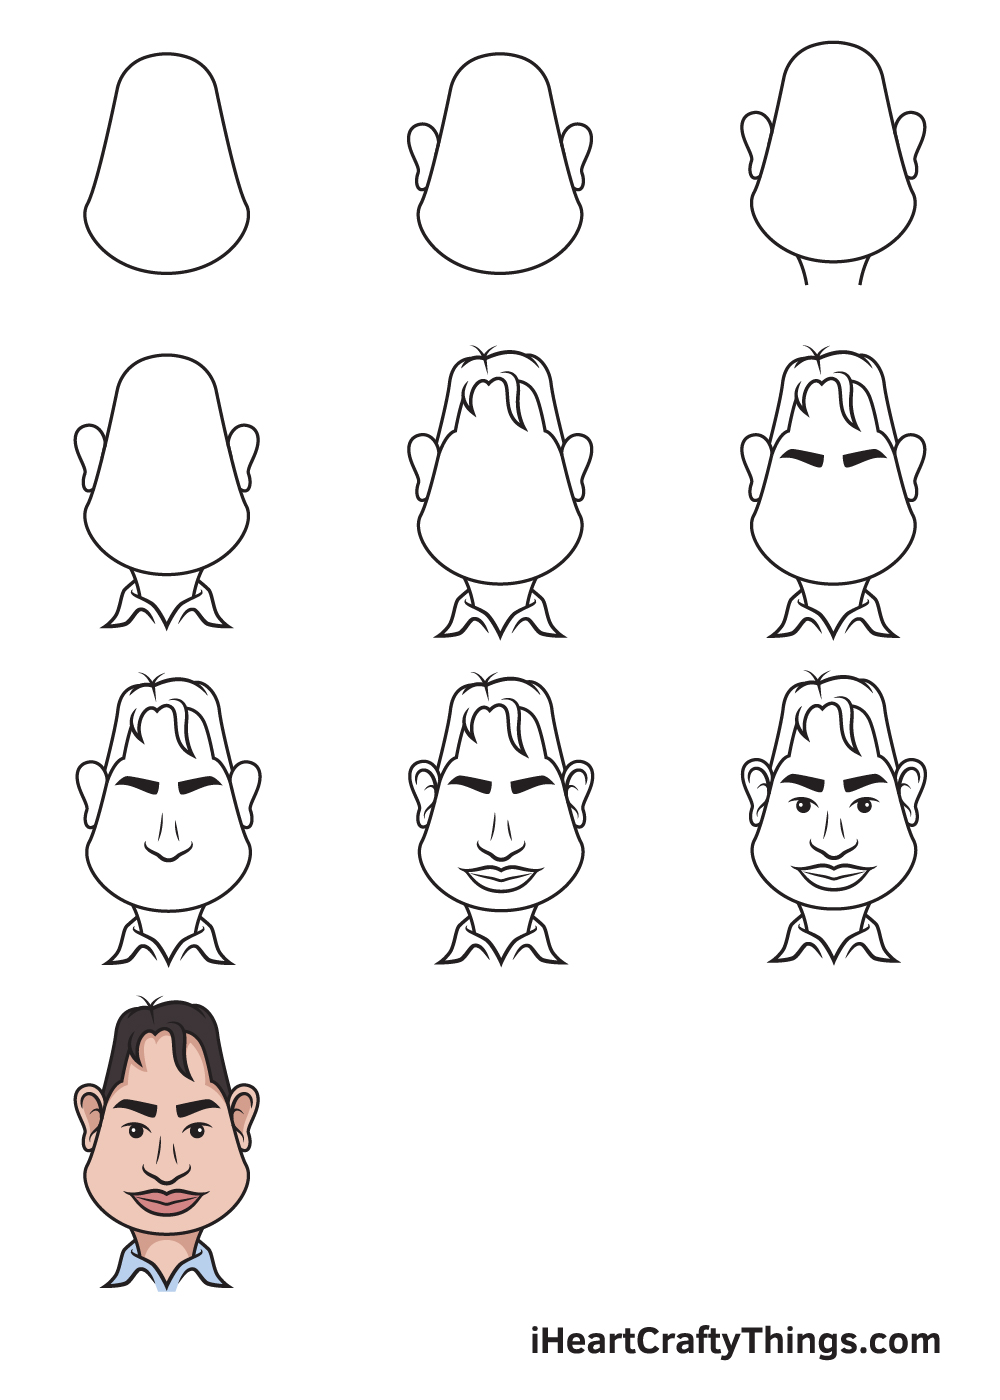 drawing caricatures in 9 steps